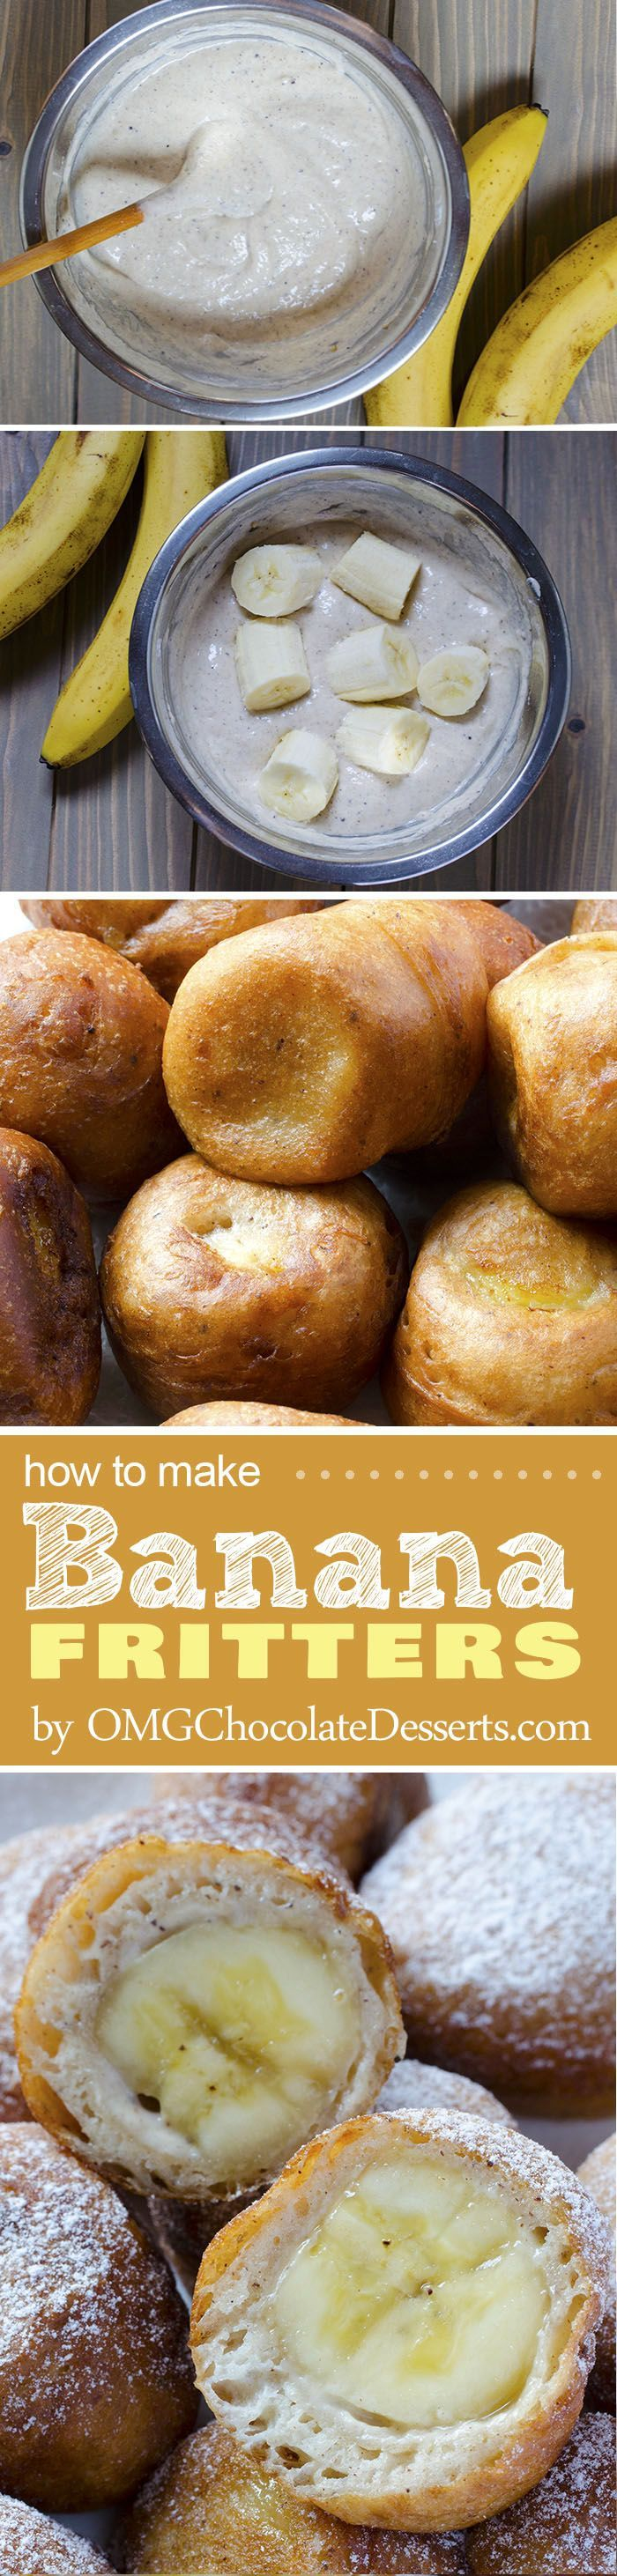 Couple of bananas extra? The time is for delicious Banana Fritters. Perfect for any occassion! | OMGChocolateDesserts.com | #banana #fritters